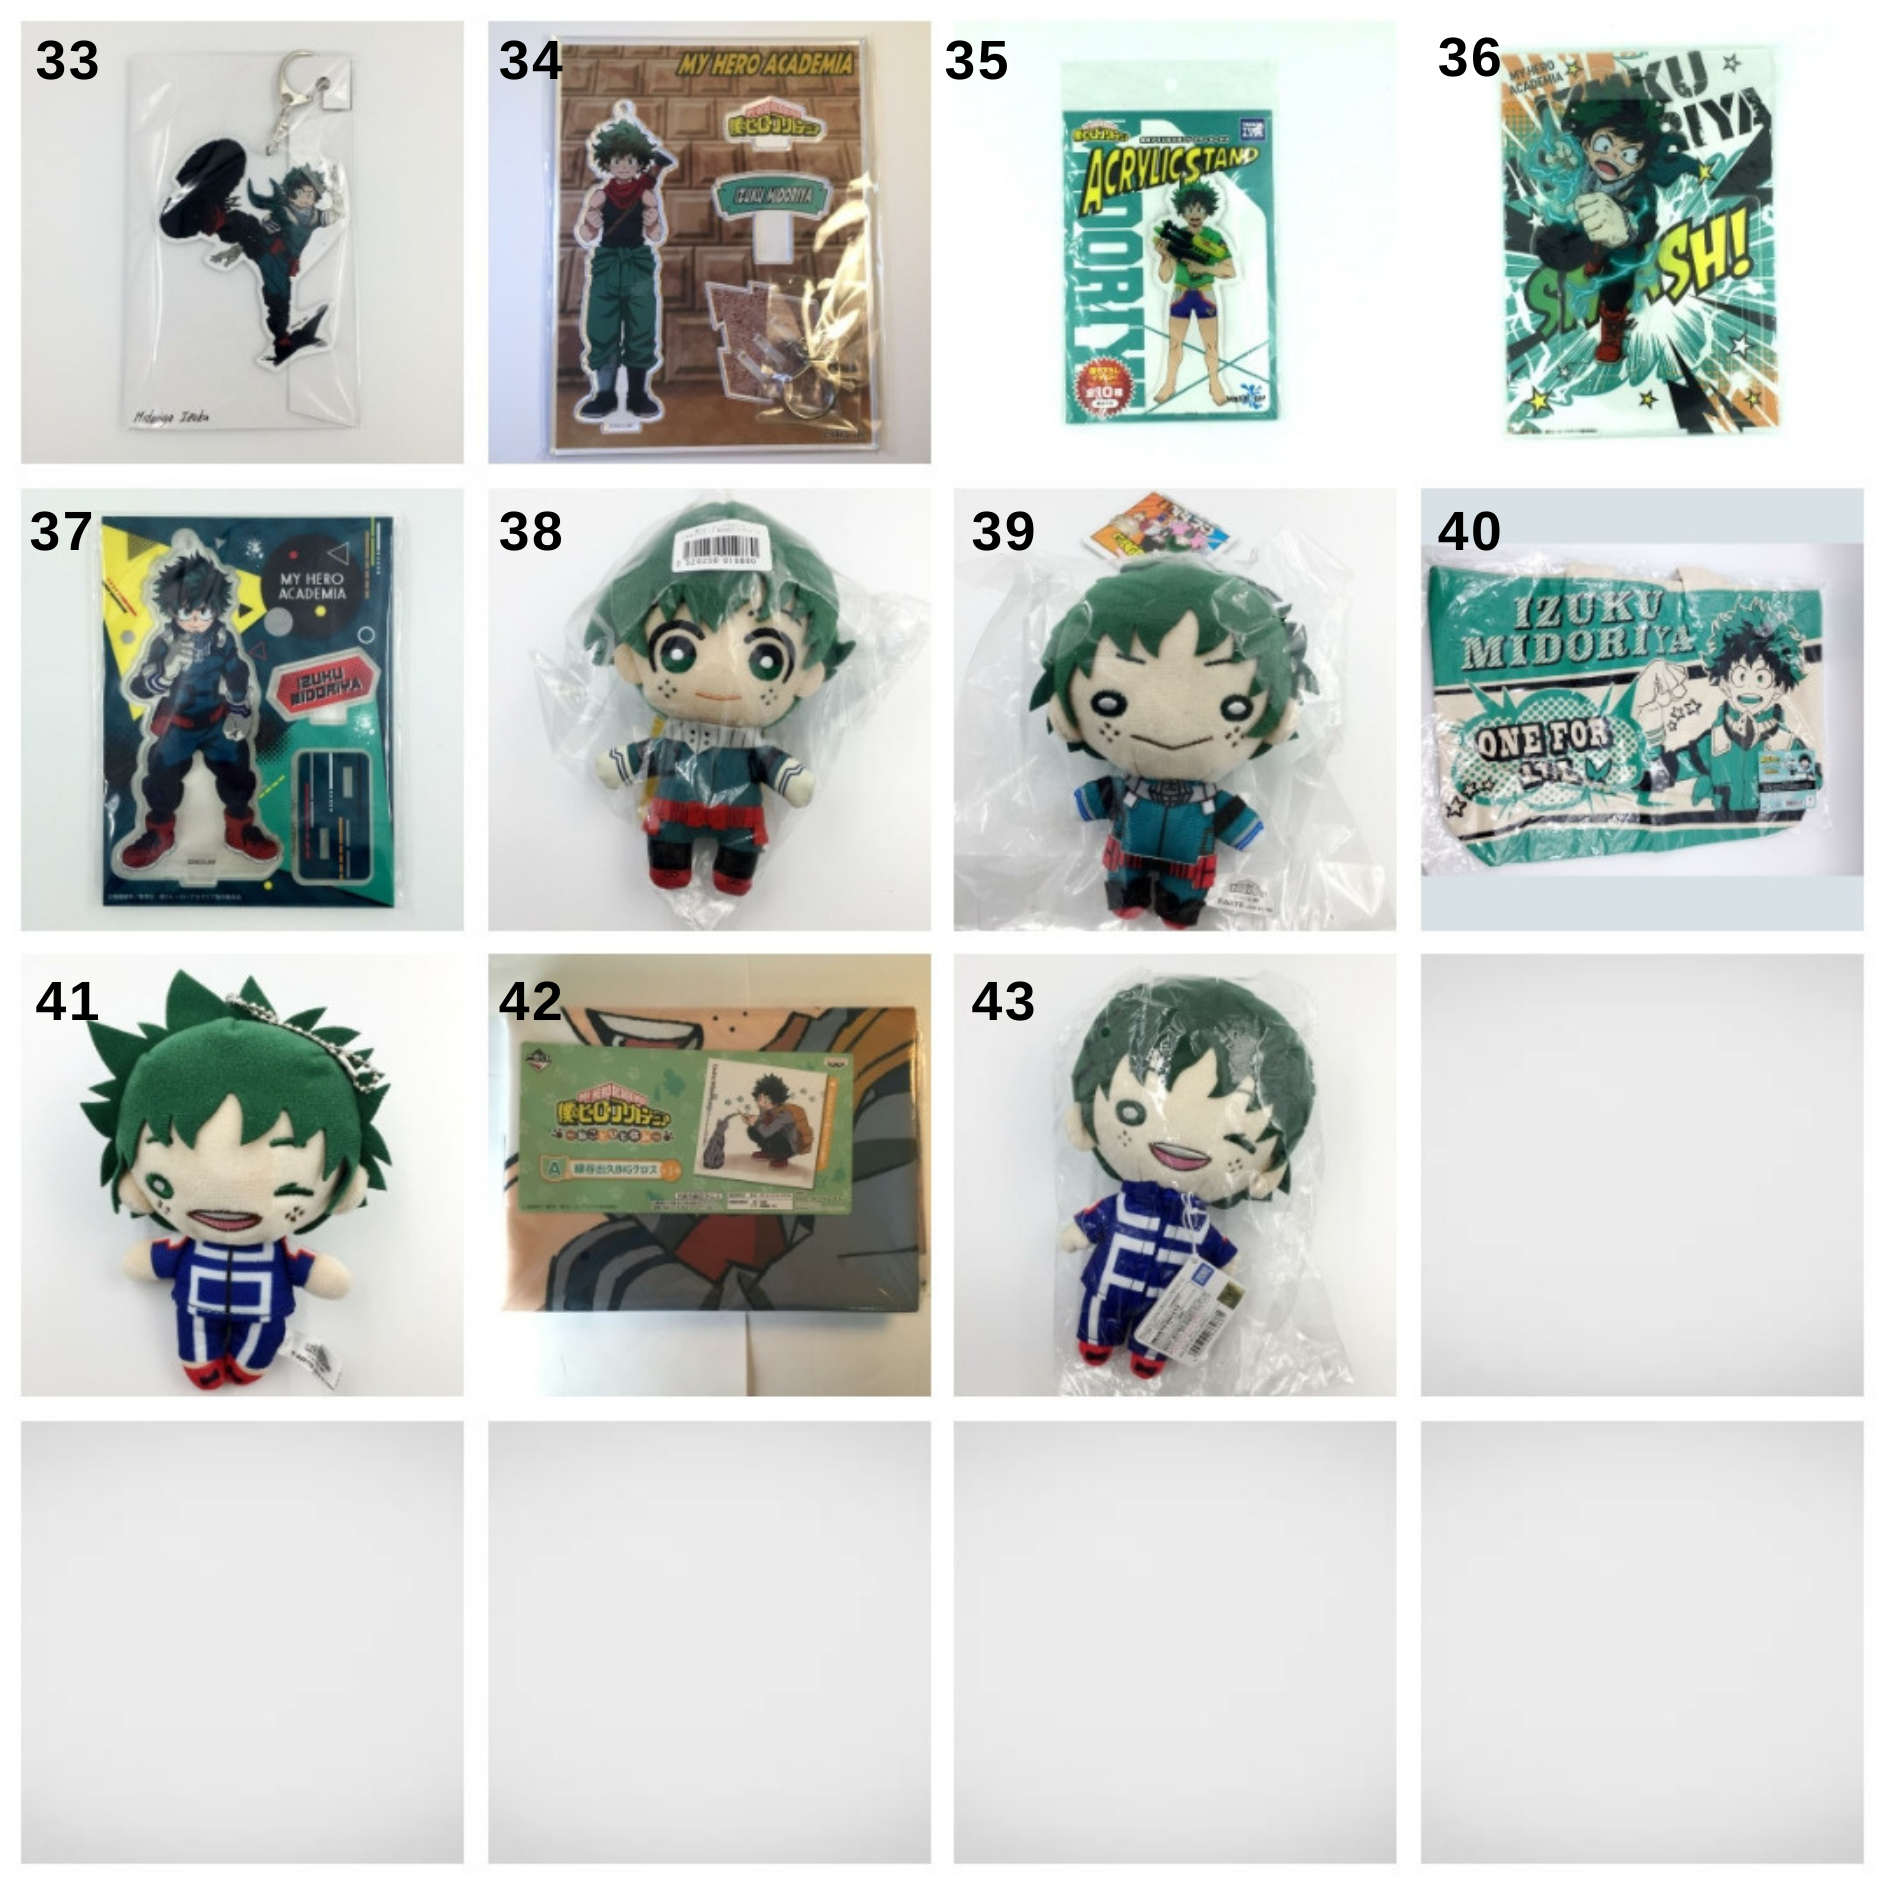 https://static.myfigurecollection.net/upload/pictures/2021/03/26/2670661.png